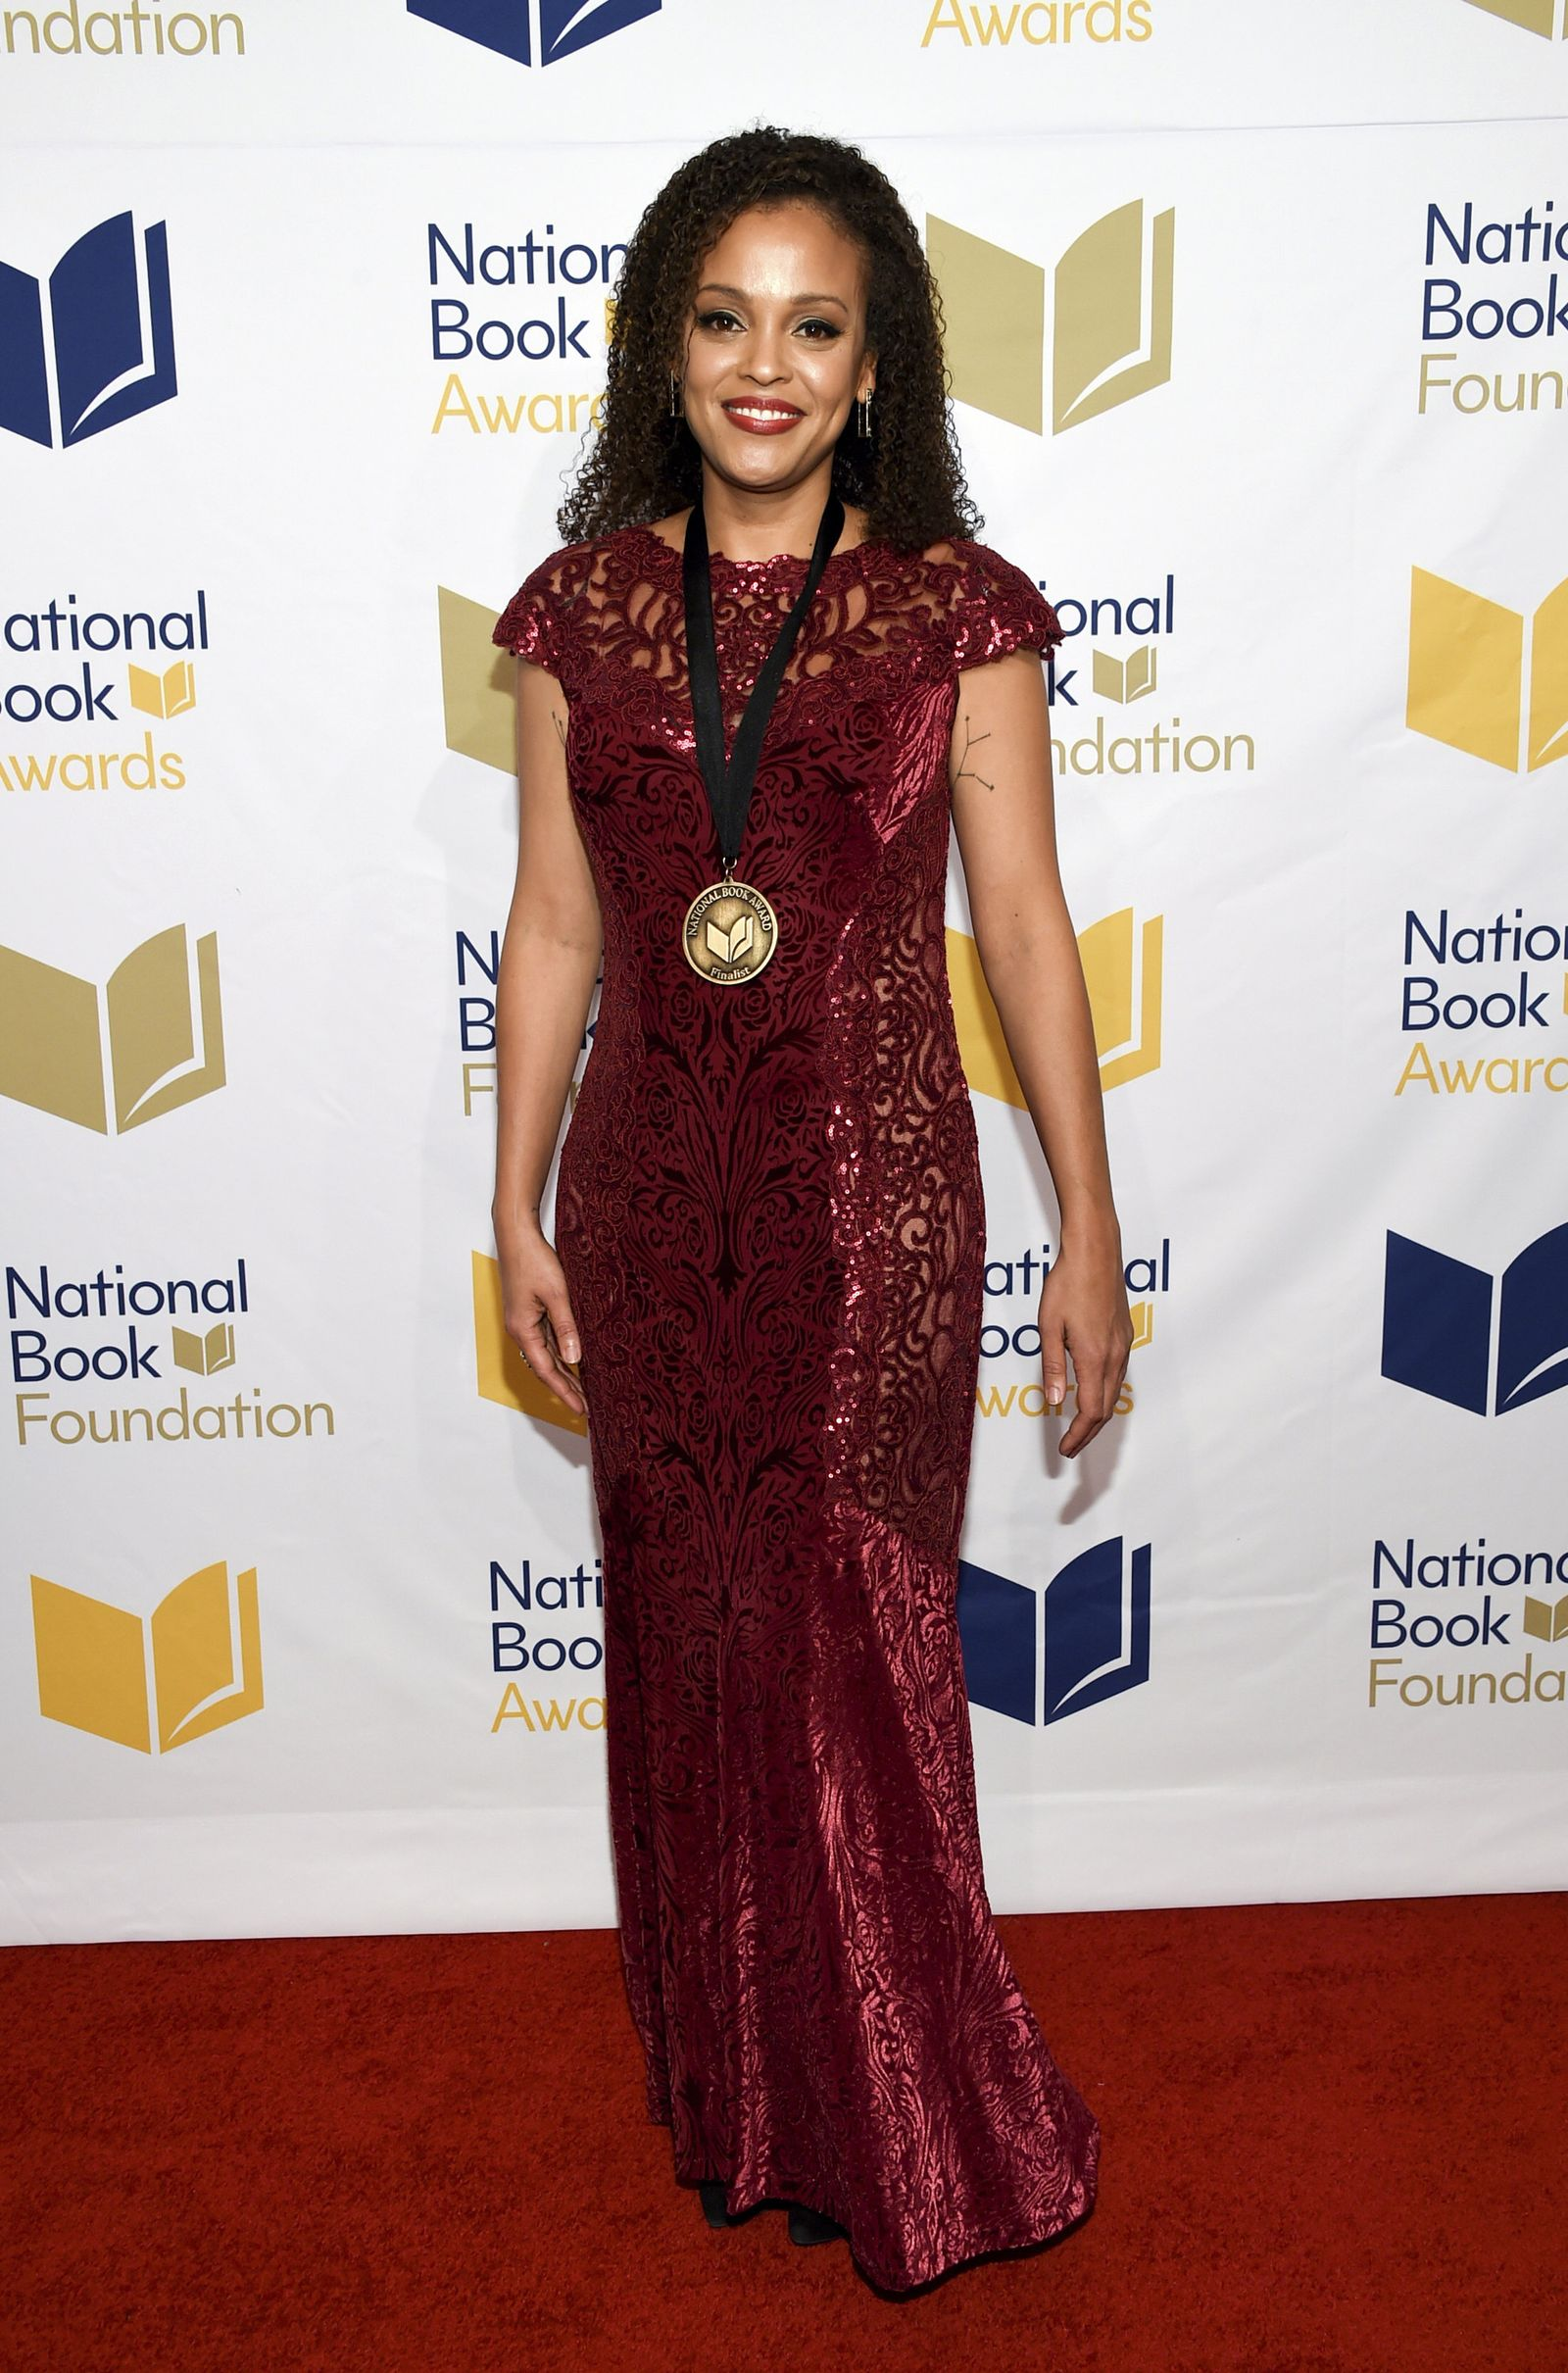 National Book Awards/ Jesmyn Ward